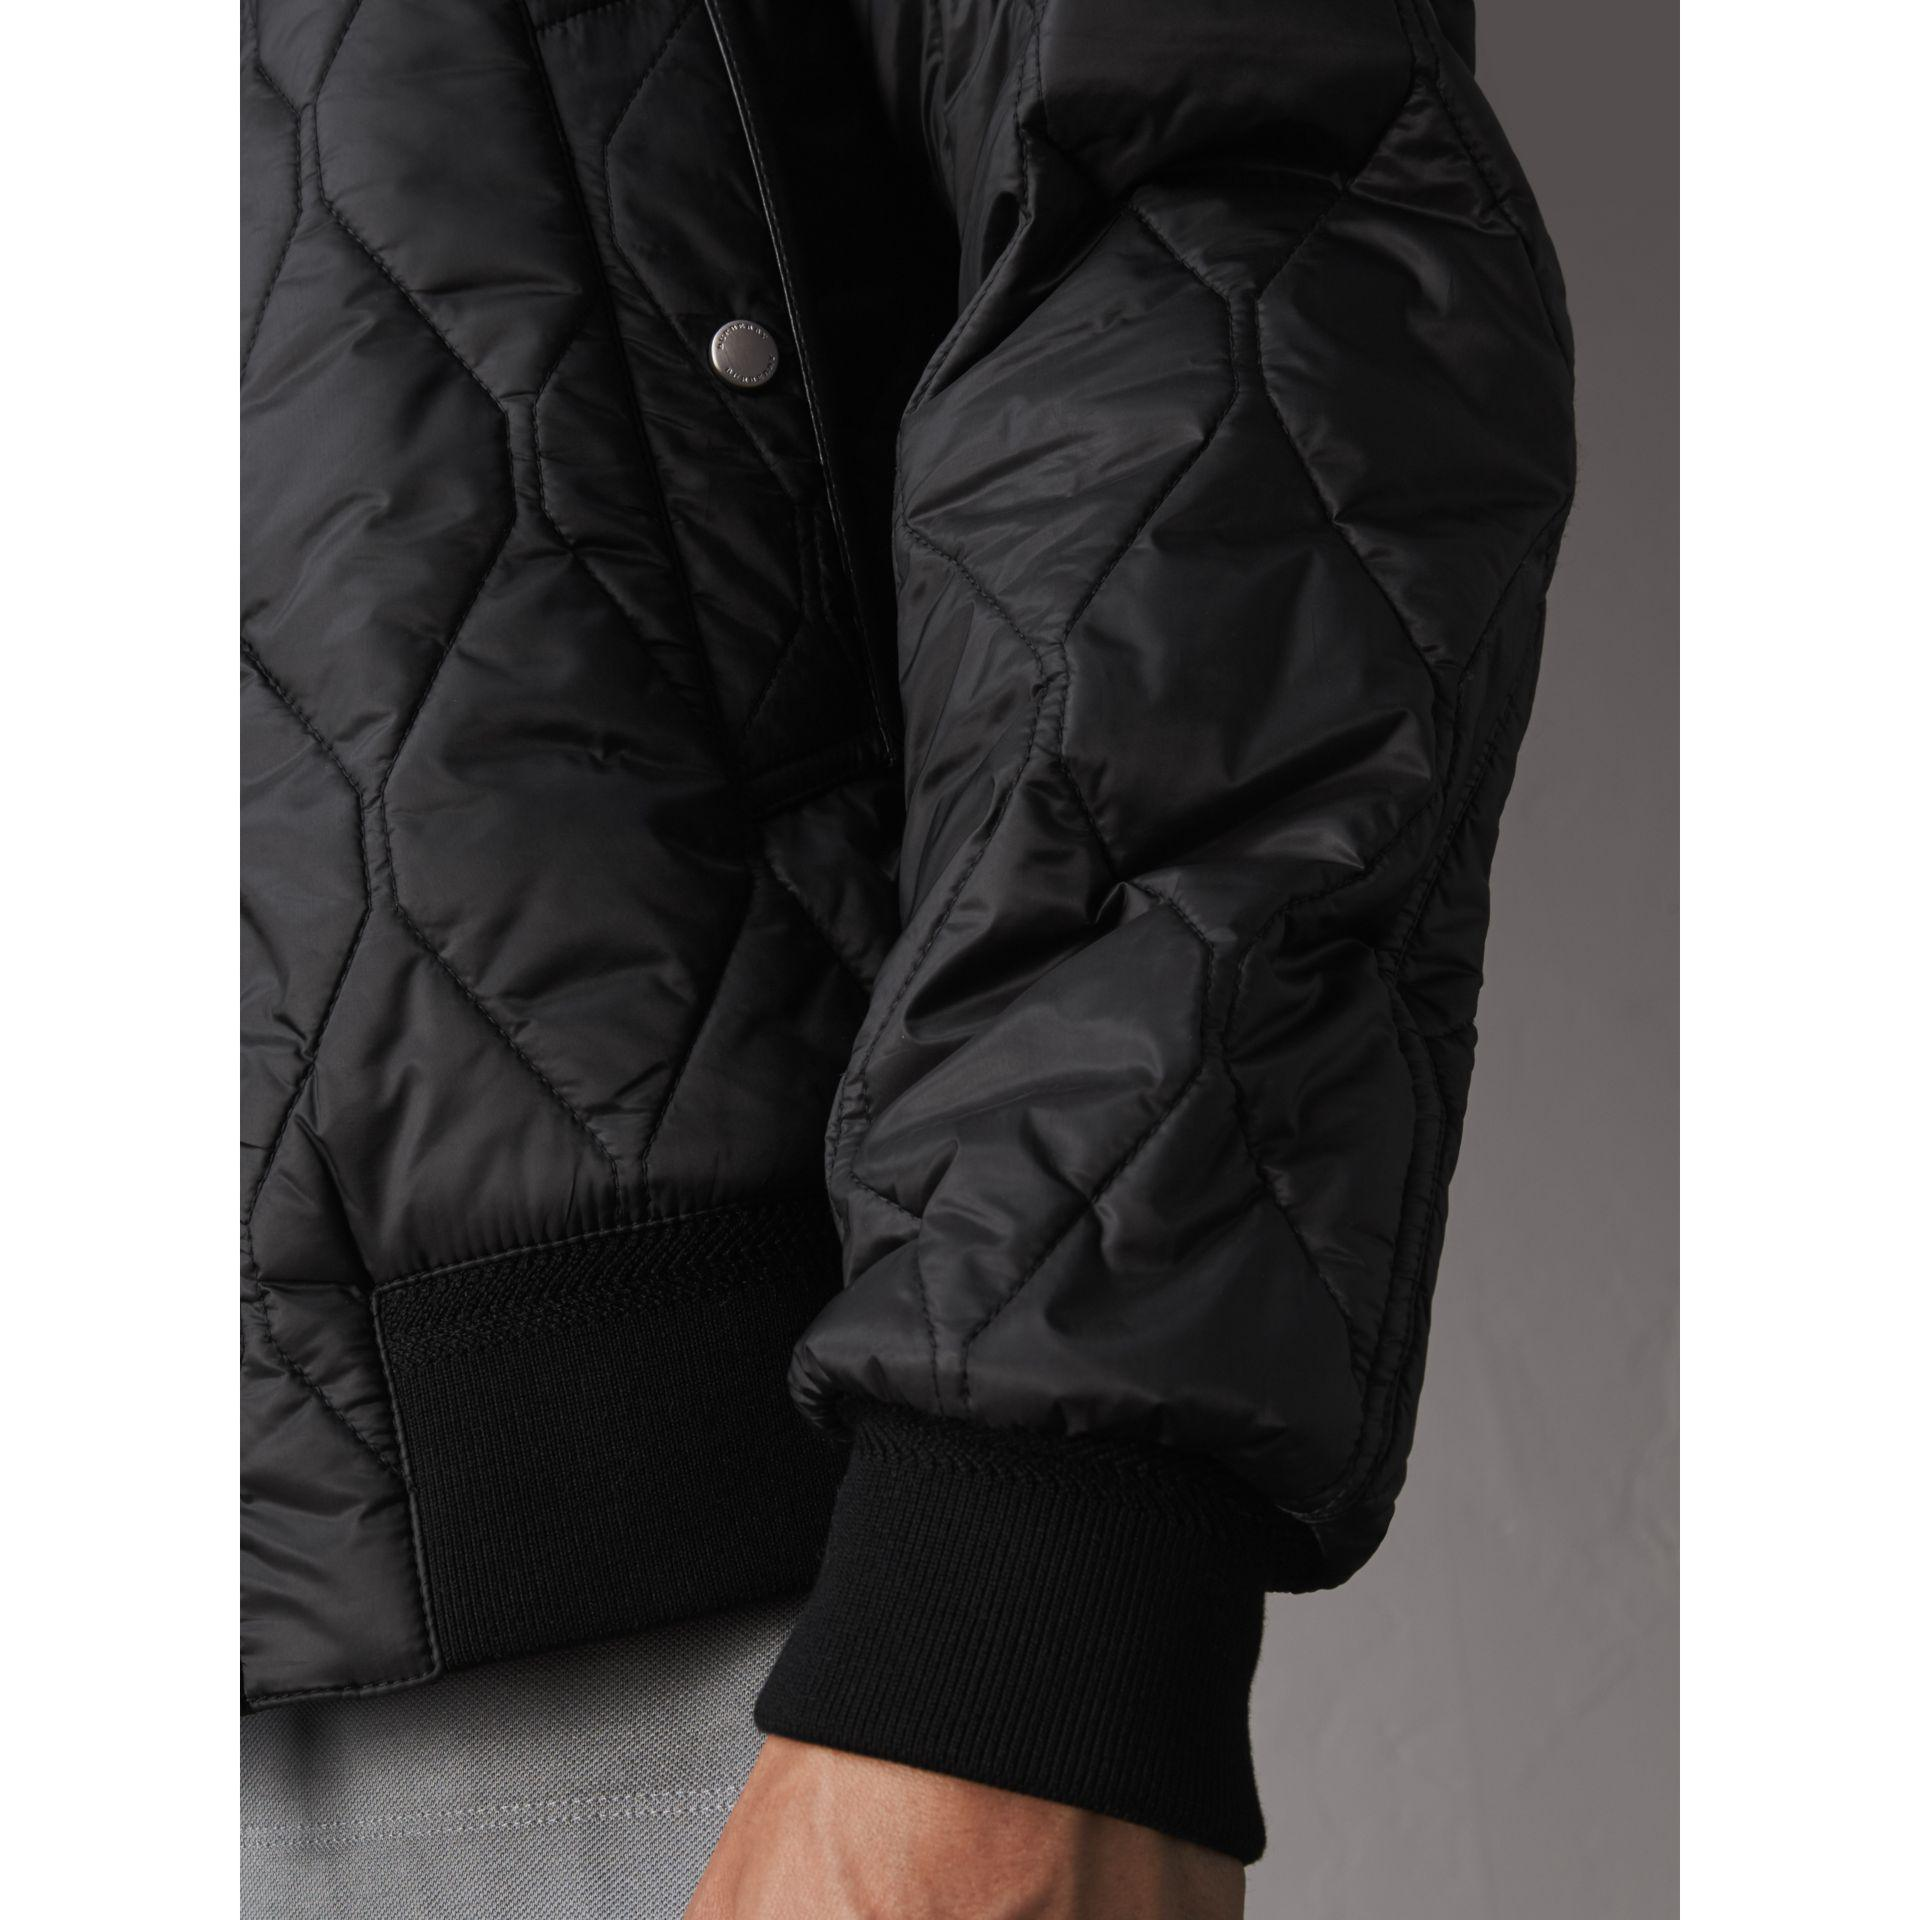 Burberry Leather Stand Collar Military Quilted Jacket With